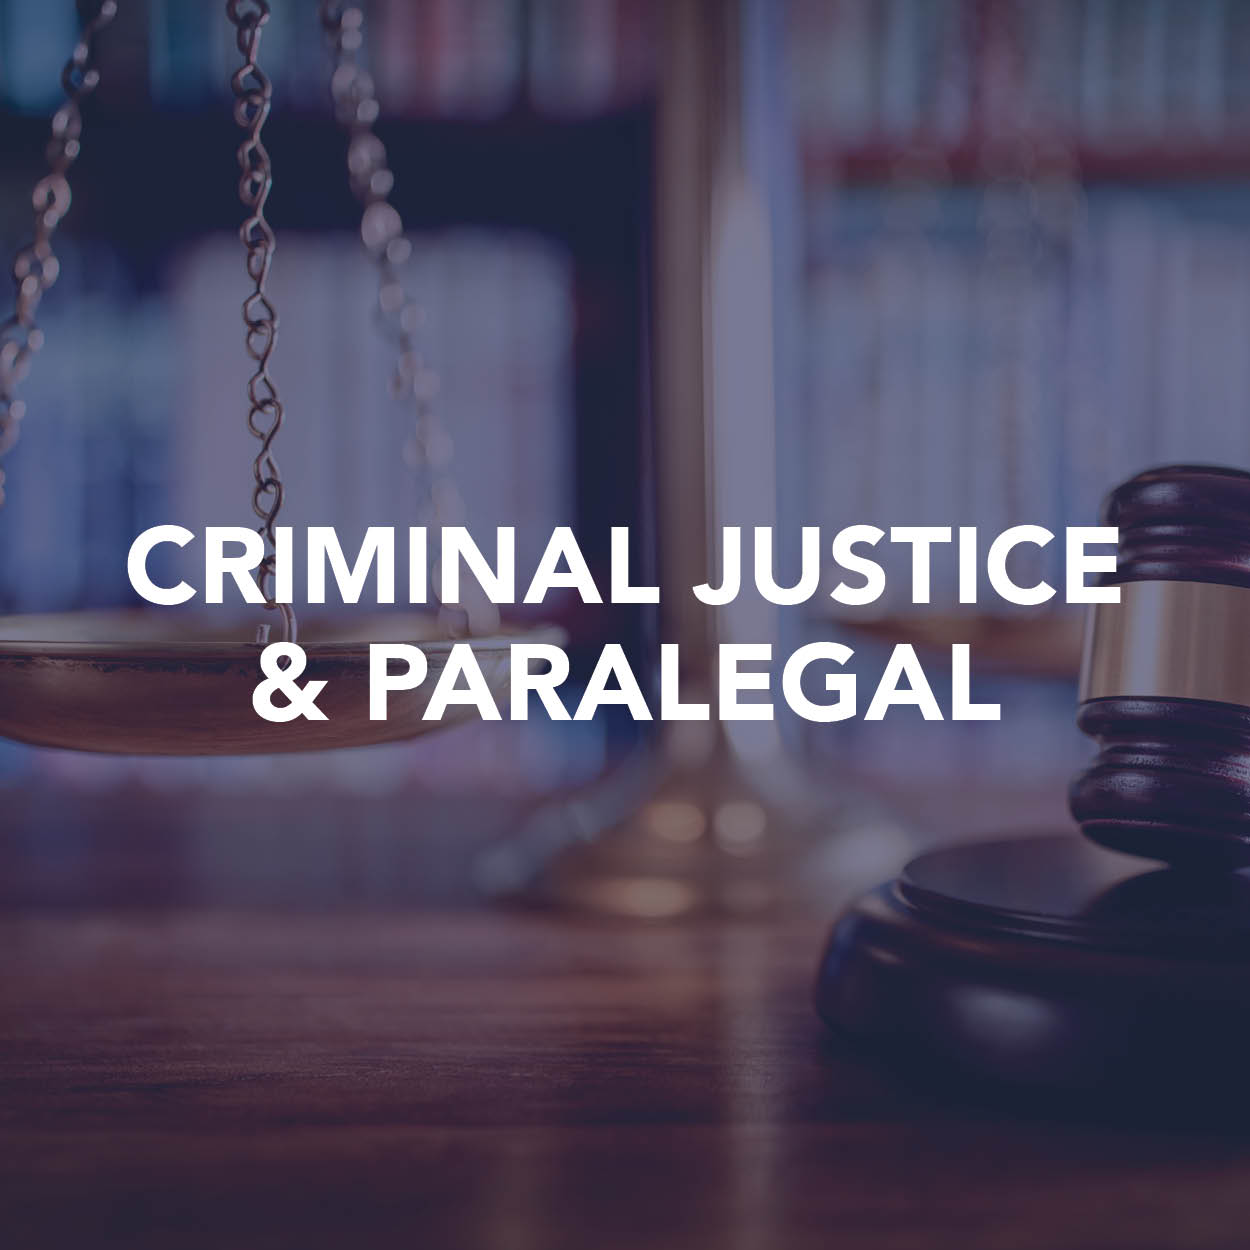 criminal justice and paralegal